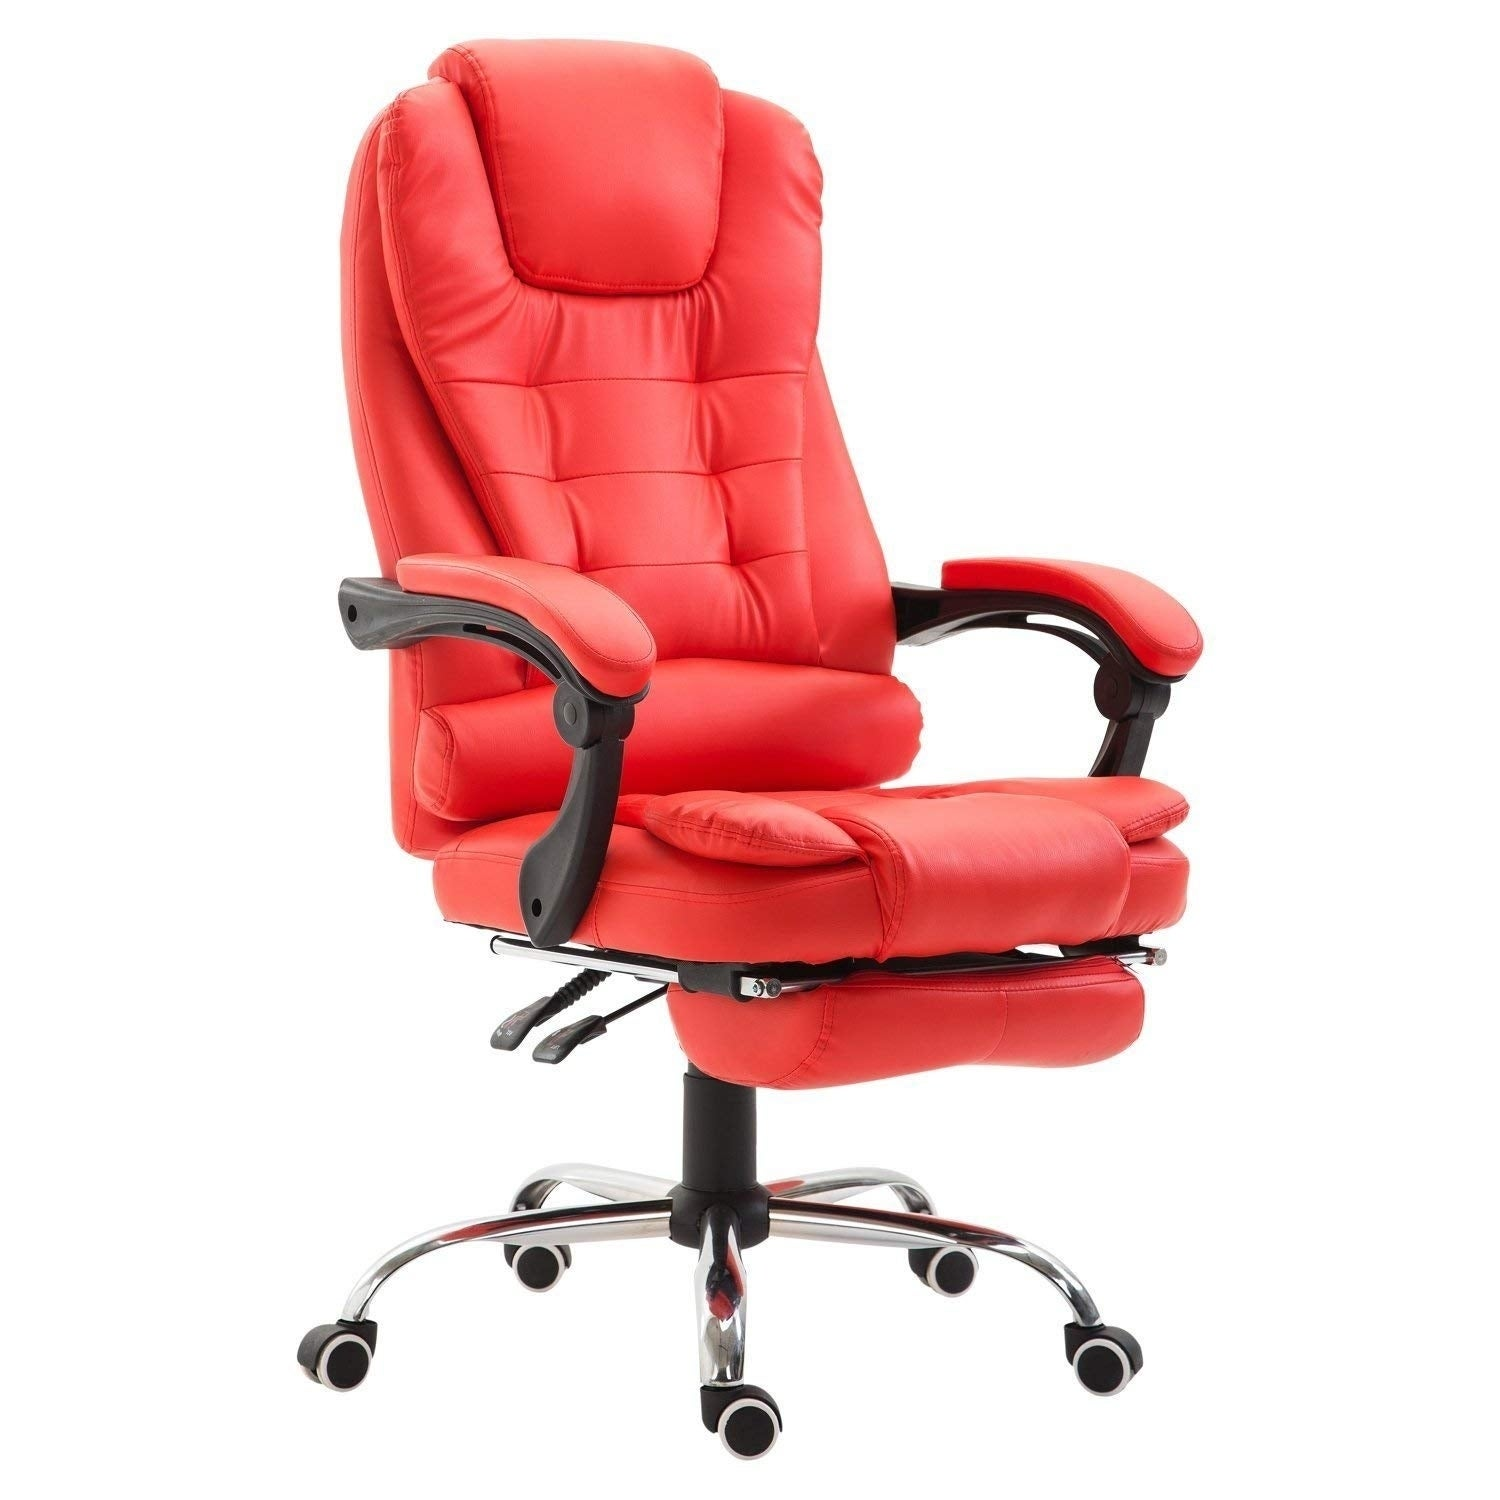 HomCom High Back Reclining PU Leather Executive Home Office Chair With Retractable Footrest - Red (High Back)